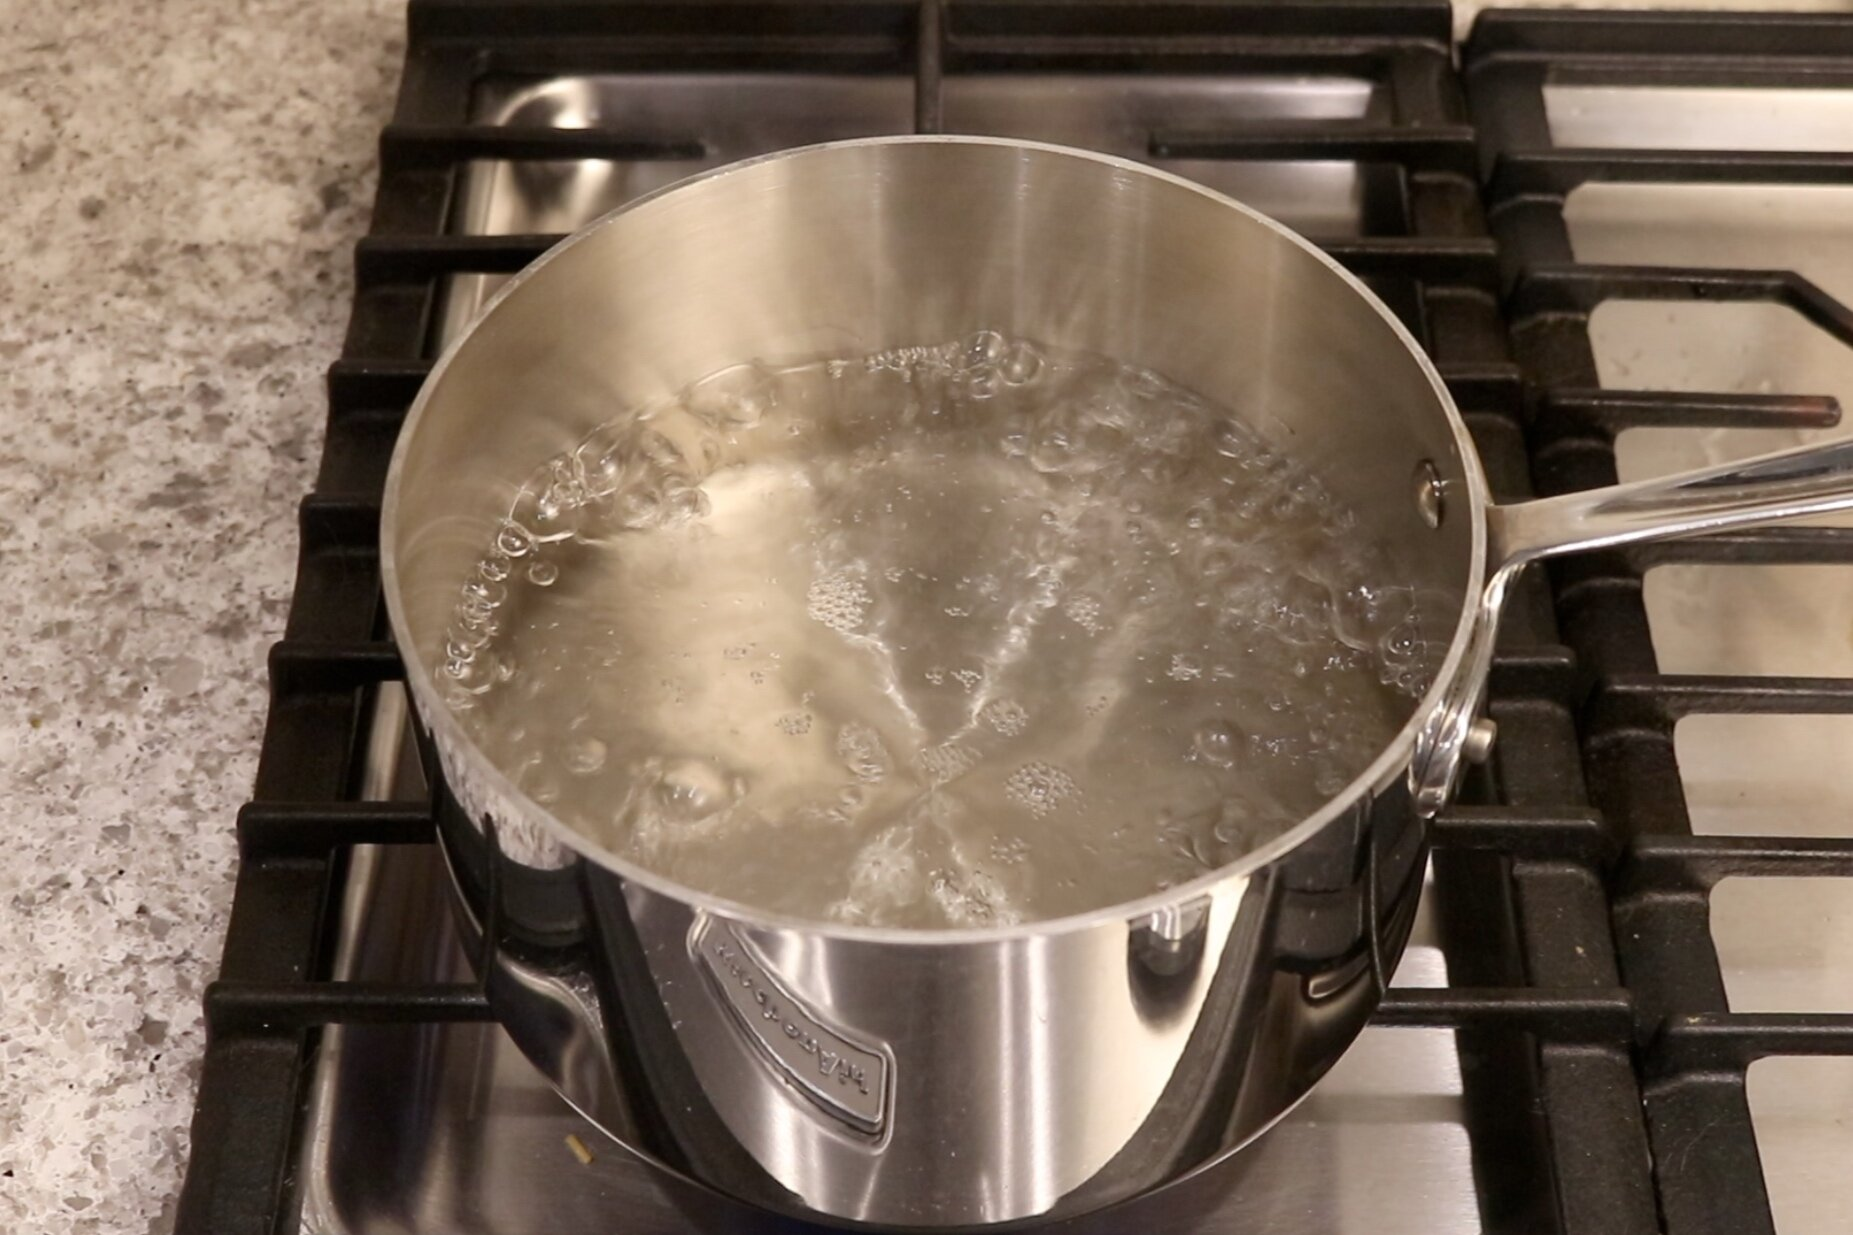 5. While meatballs are cooking, add six cups of water to a medium pot and bring to a boil. Add 1 teaspoon of salt to the water. -